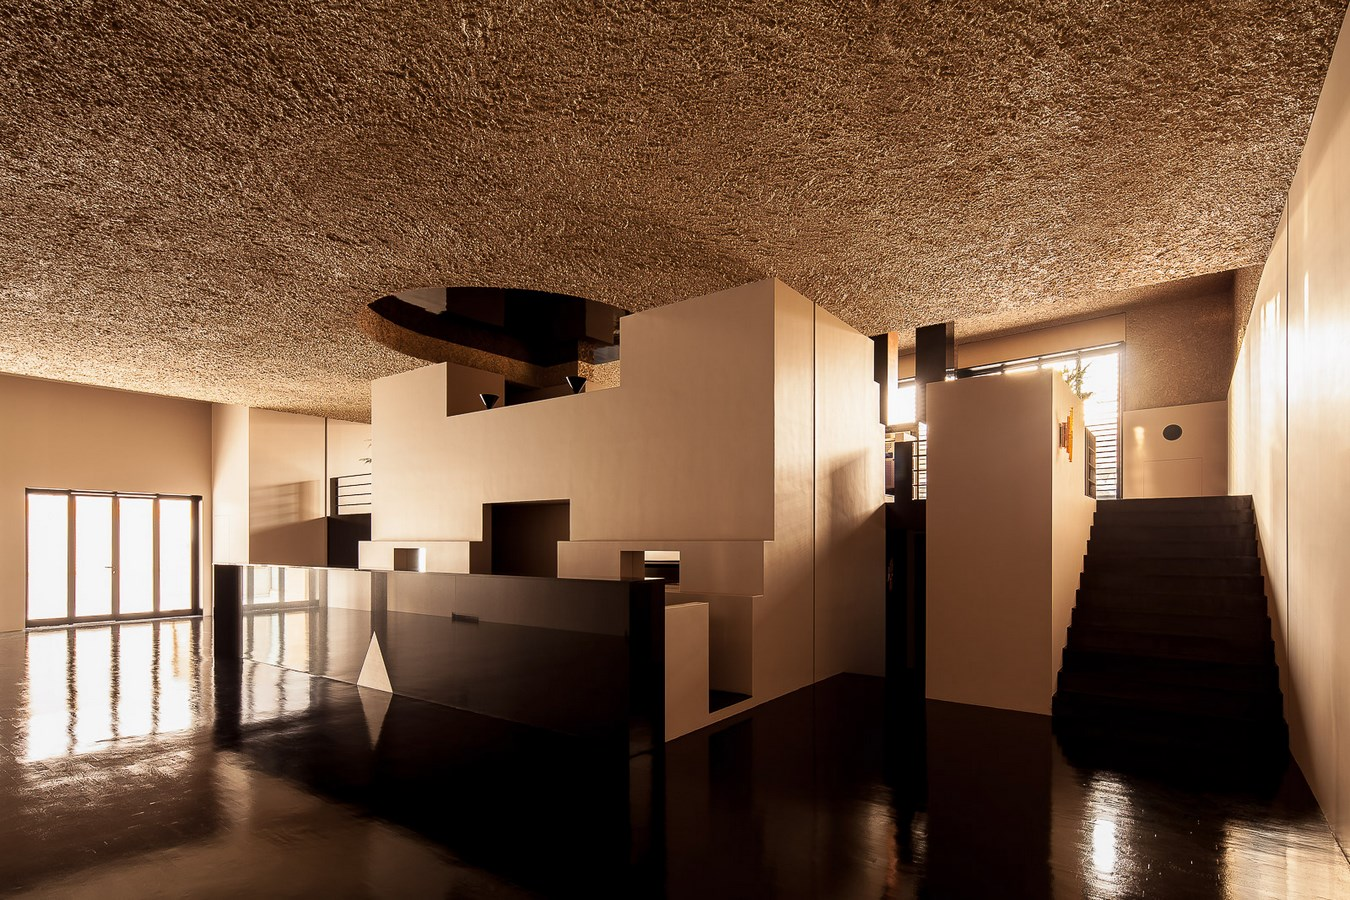 10 Projects of Antonino Cardillo every Architect must visit! - Off Club, Italy - Sheet2